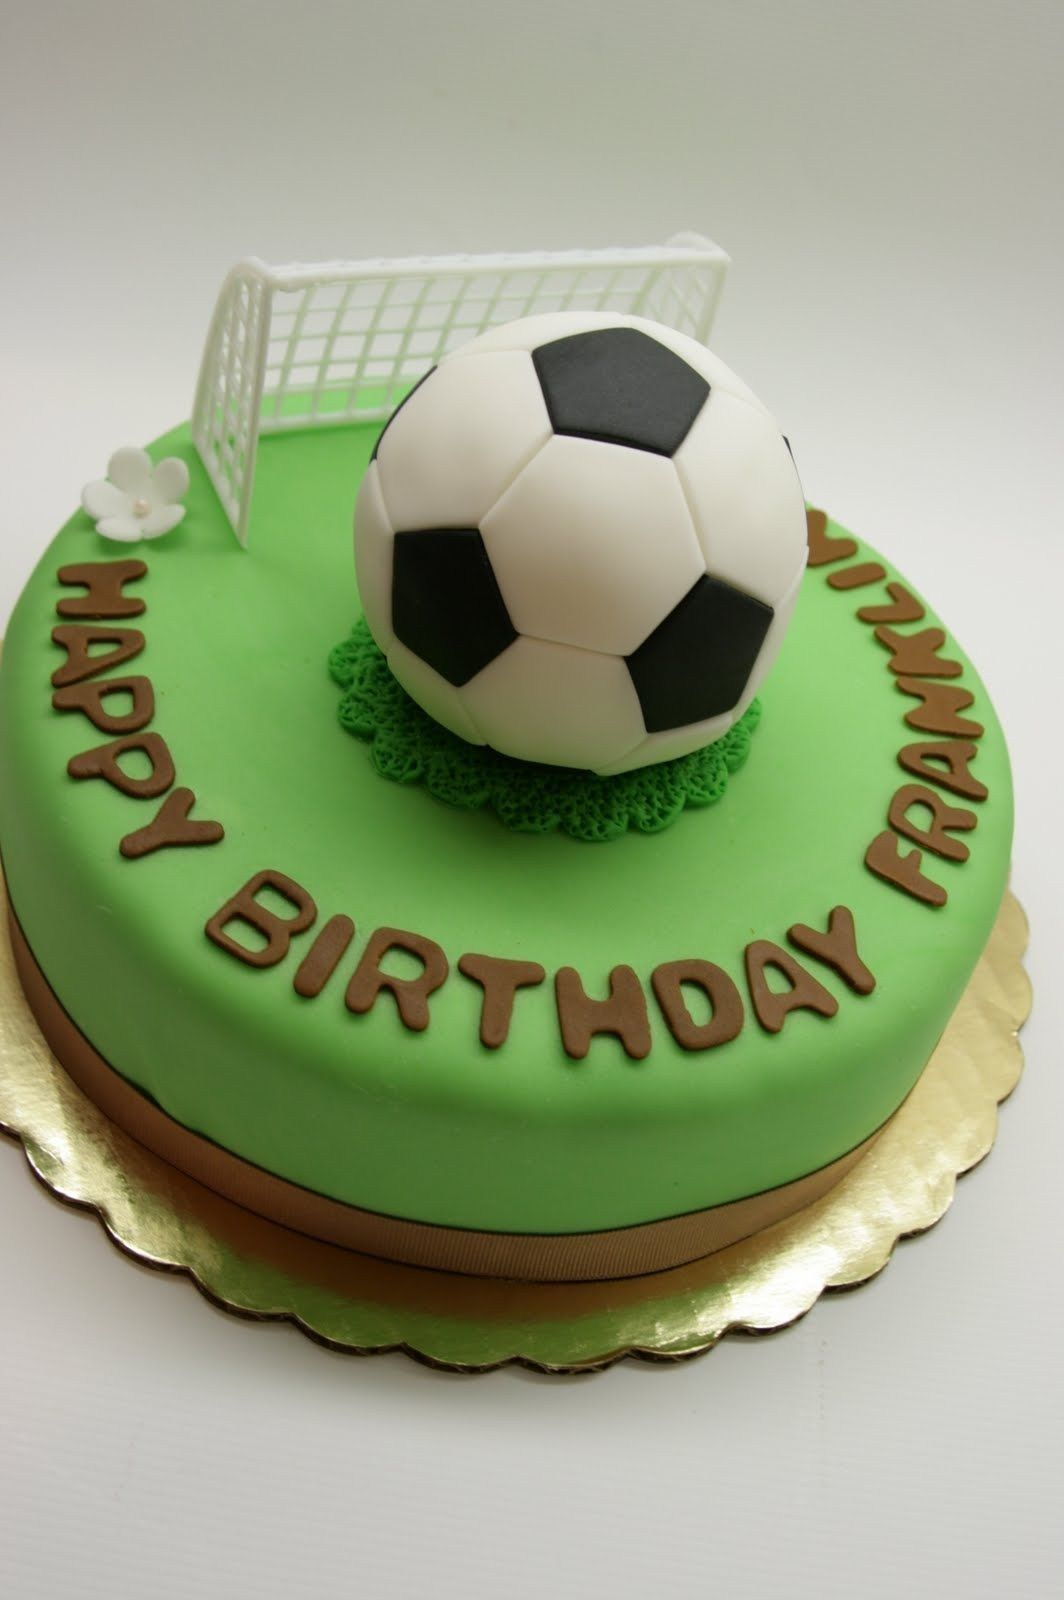 21 Excellent Image Of Soccer Birthday Cakes With Images